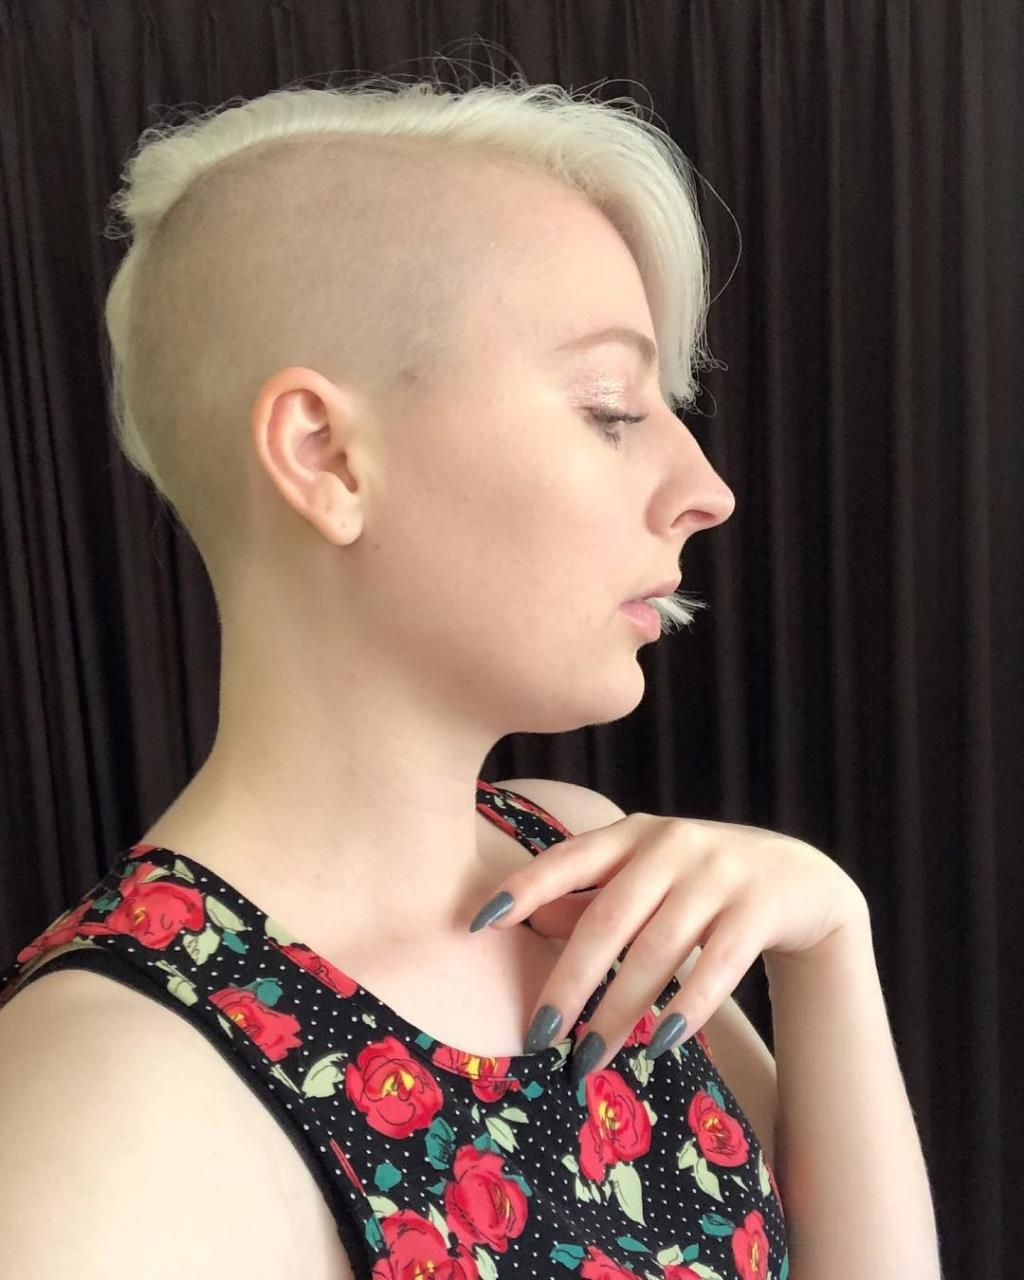 Asymmetrical Haircut Headshave And Bald Fetish Blog Half Shaved Head Shaved Sides